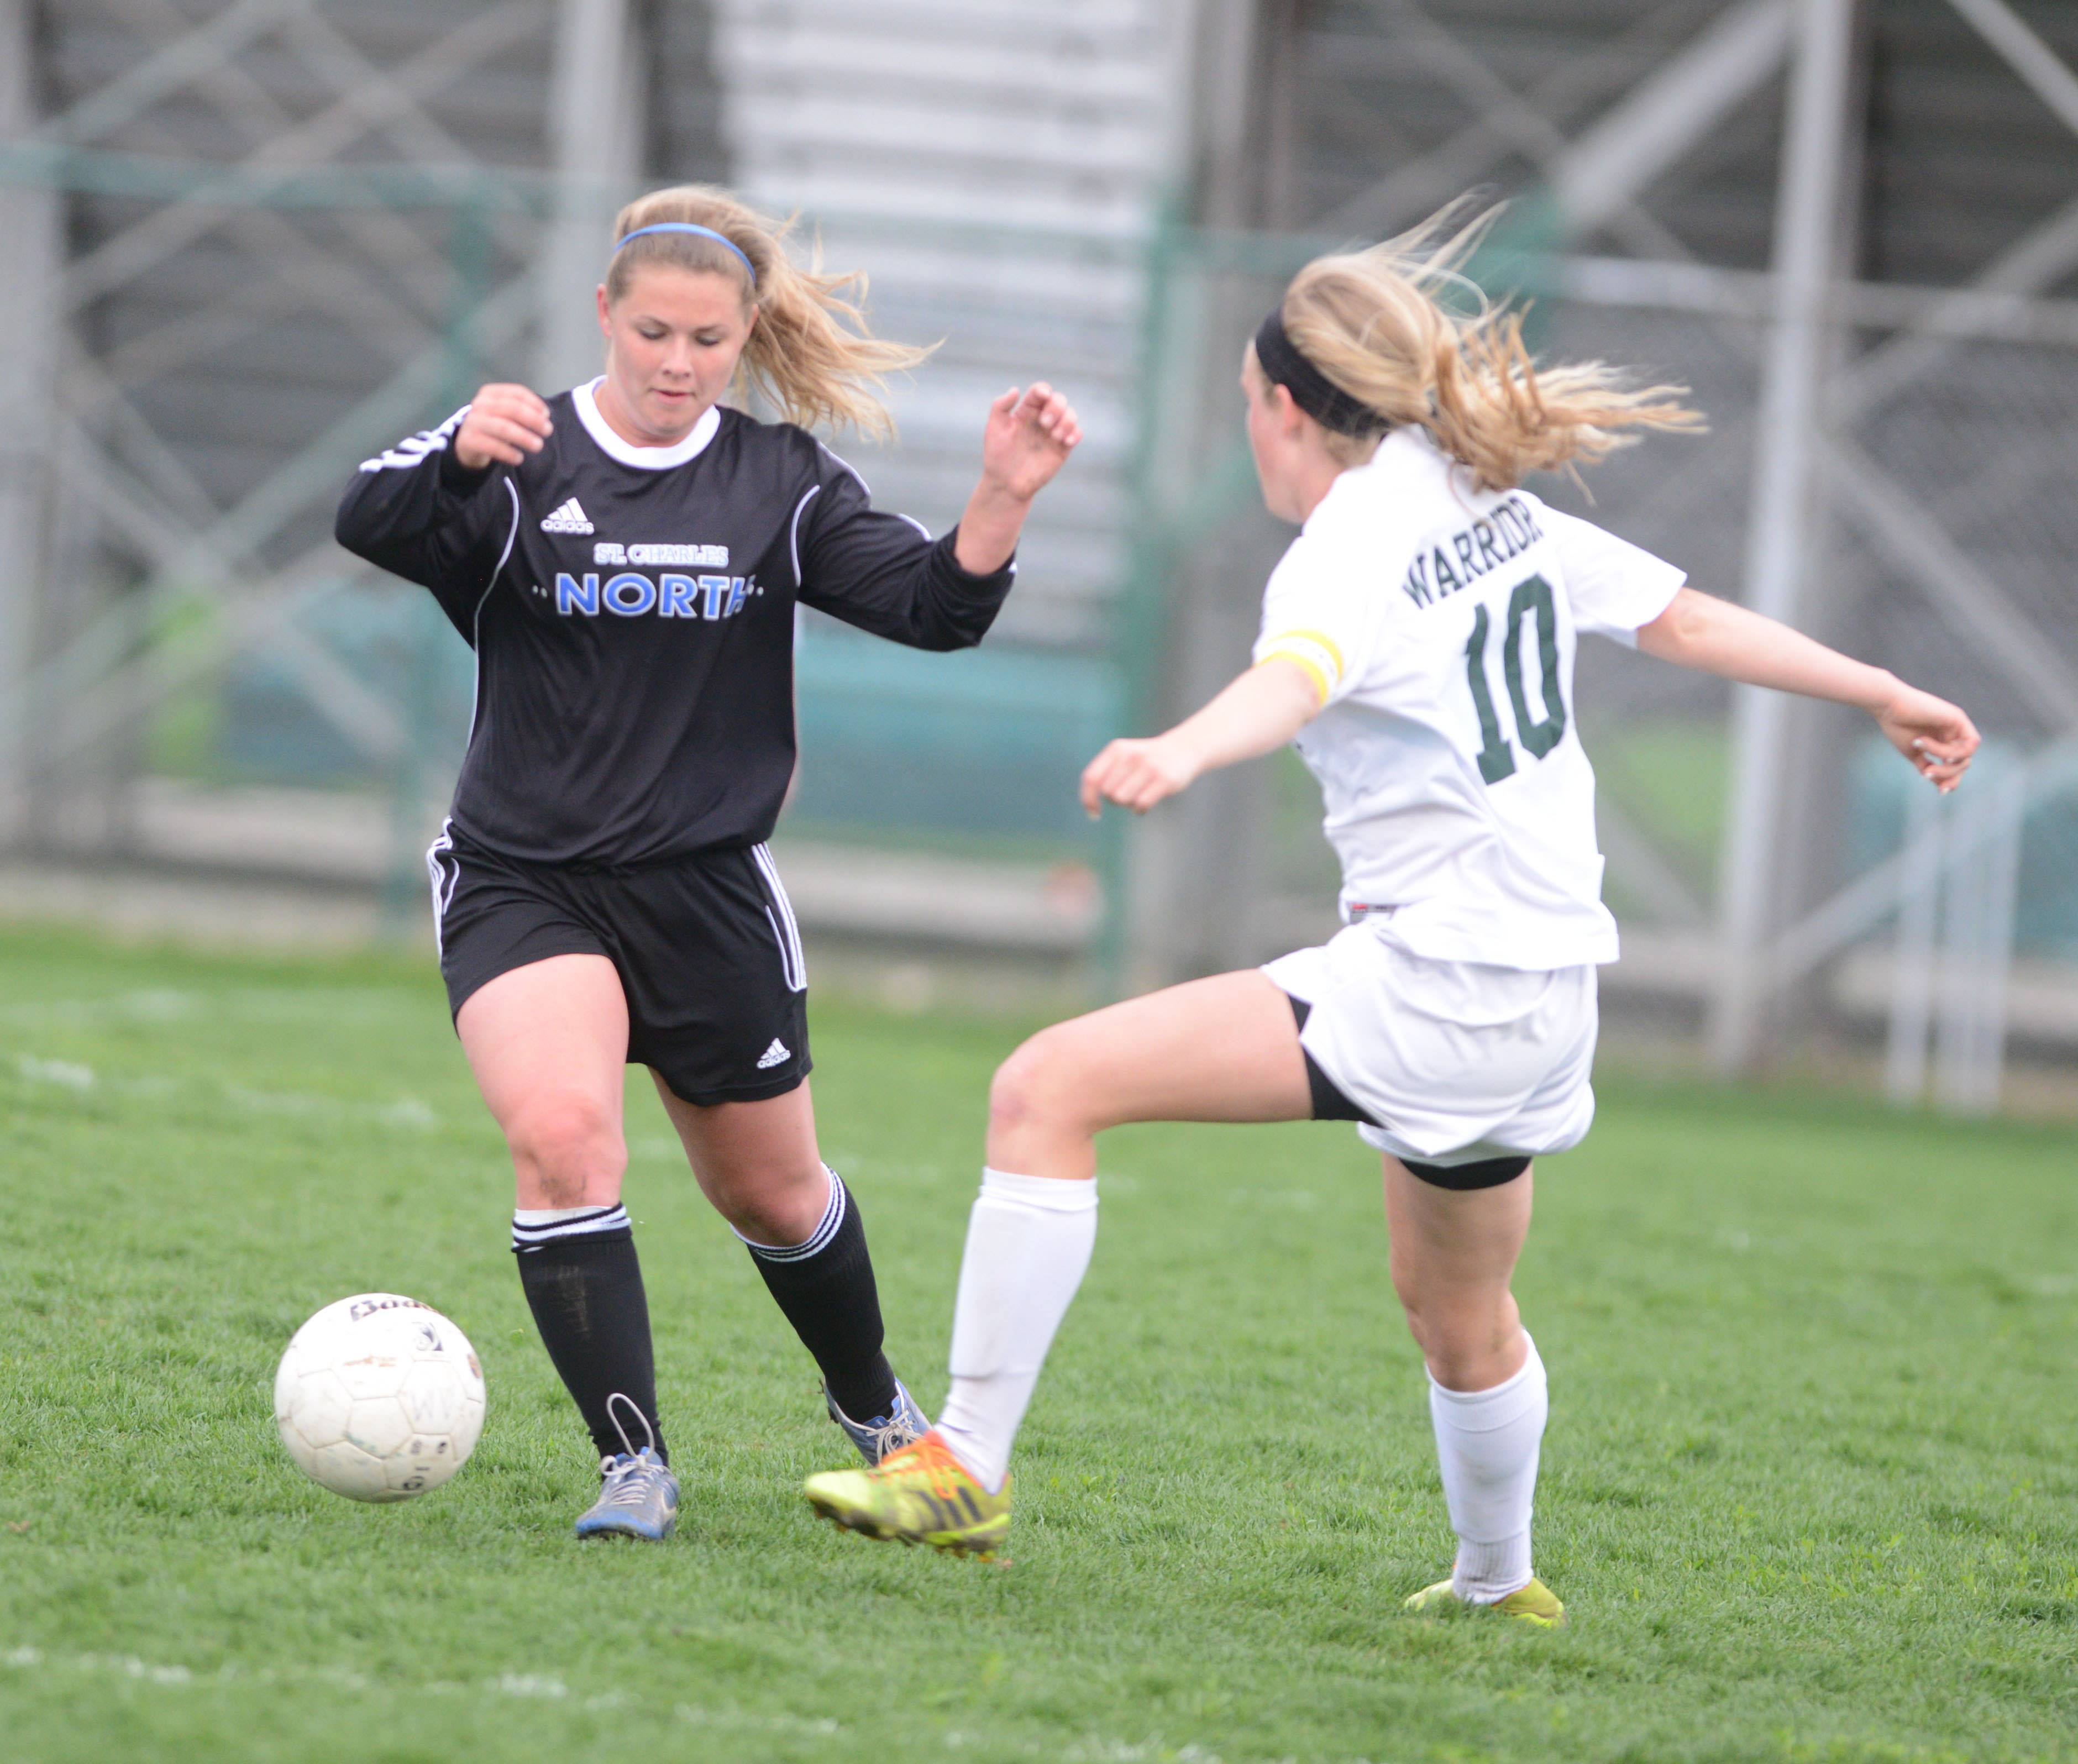 Natalie Winkates of Saint Charles North and MacKenzie Fuller of Waubonsie take control of the ball during the  St. Charles North at Waubonsie Valley girls soccer game Wednesday.